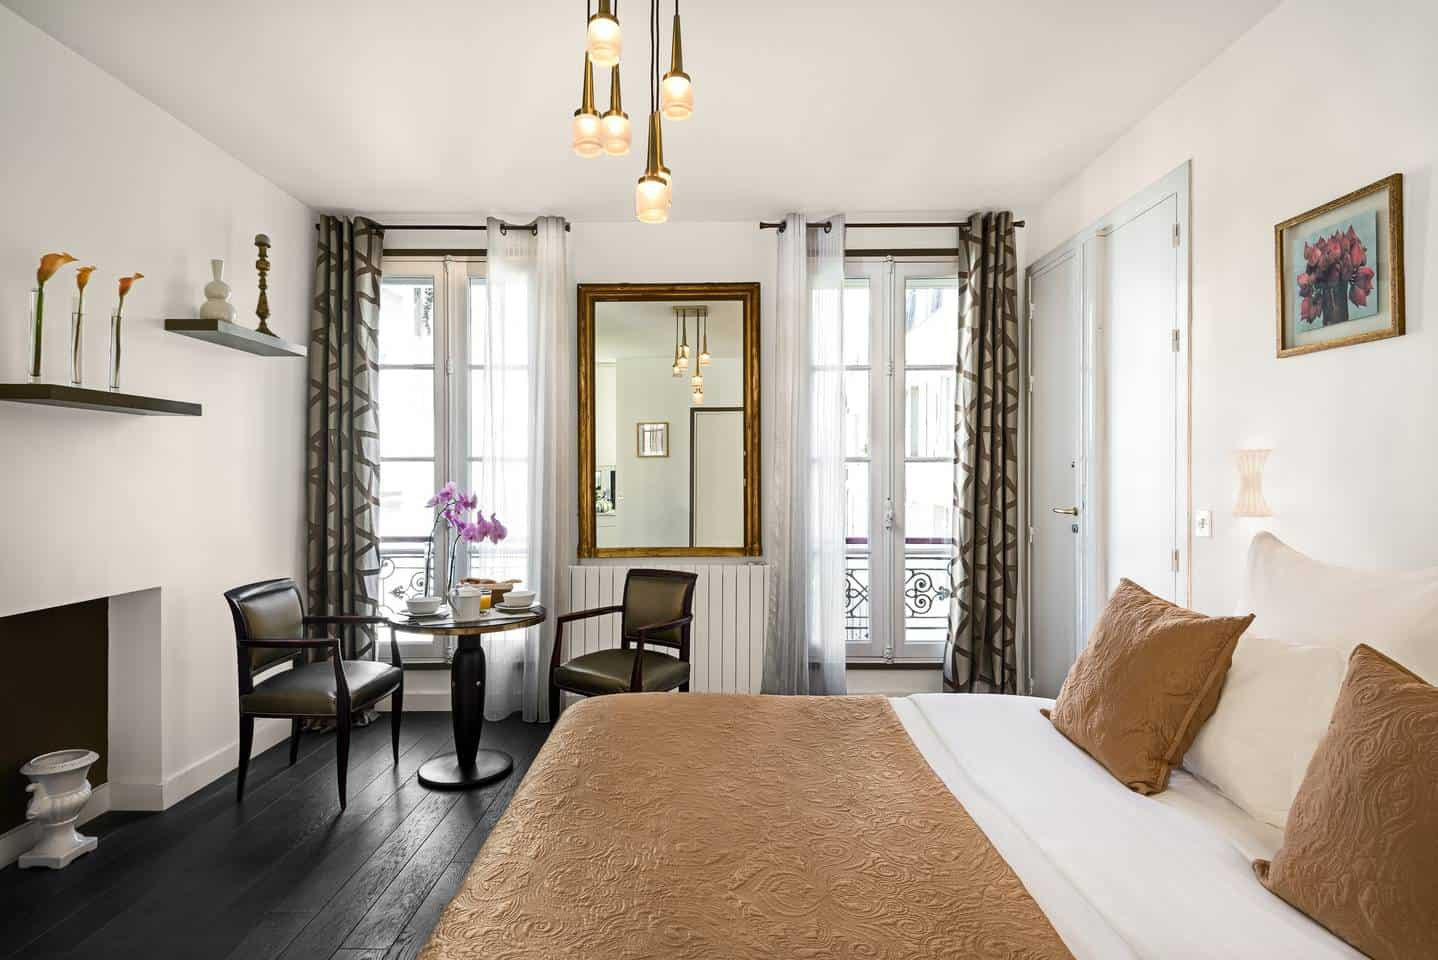 Wow! This Airbnb Paris listing near Luxembourg Gardens is dreamy. You have to see the pictures!